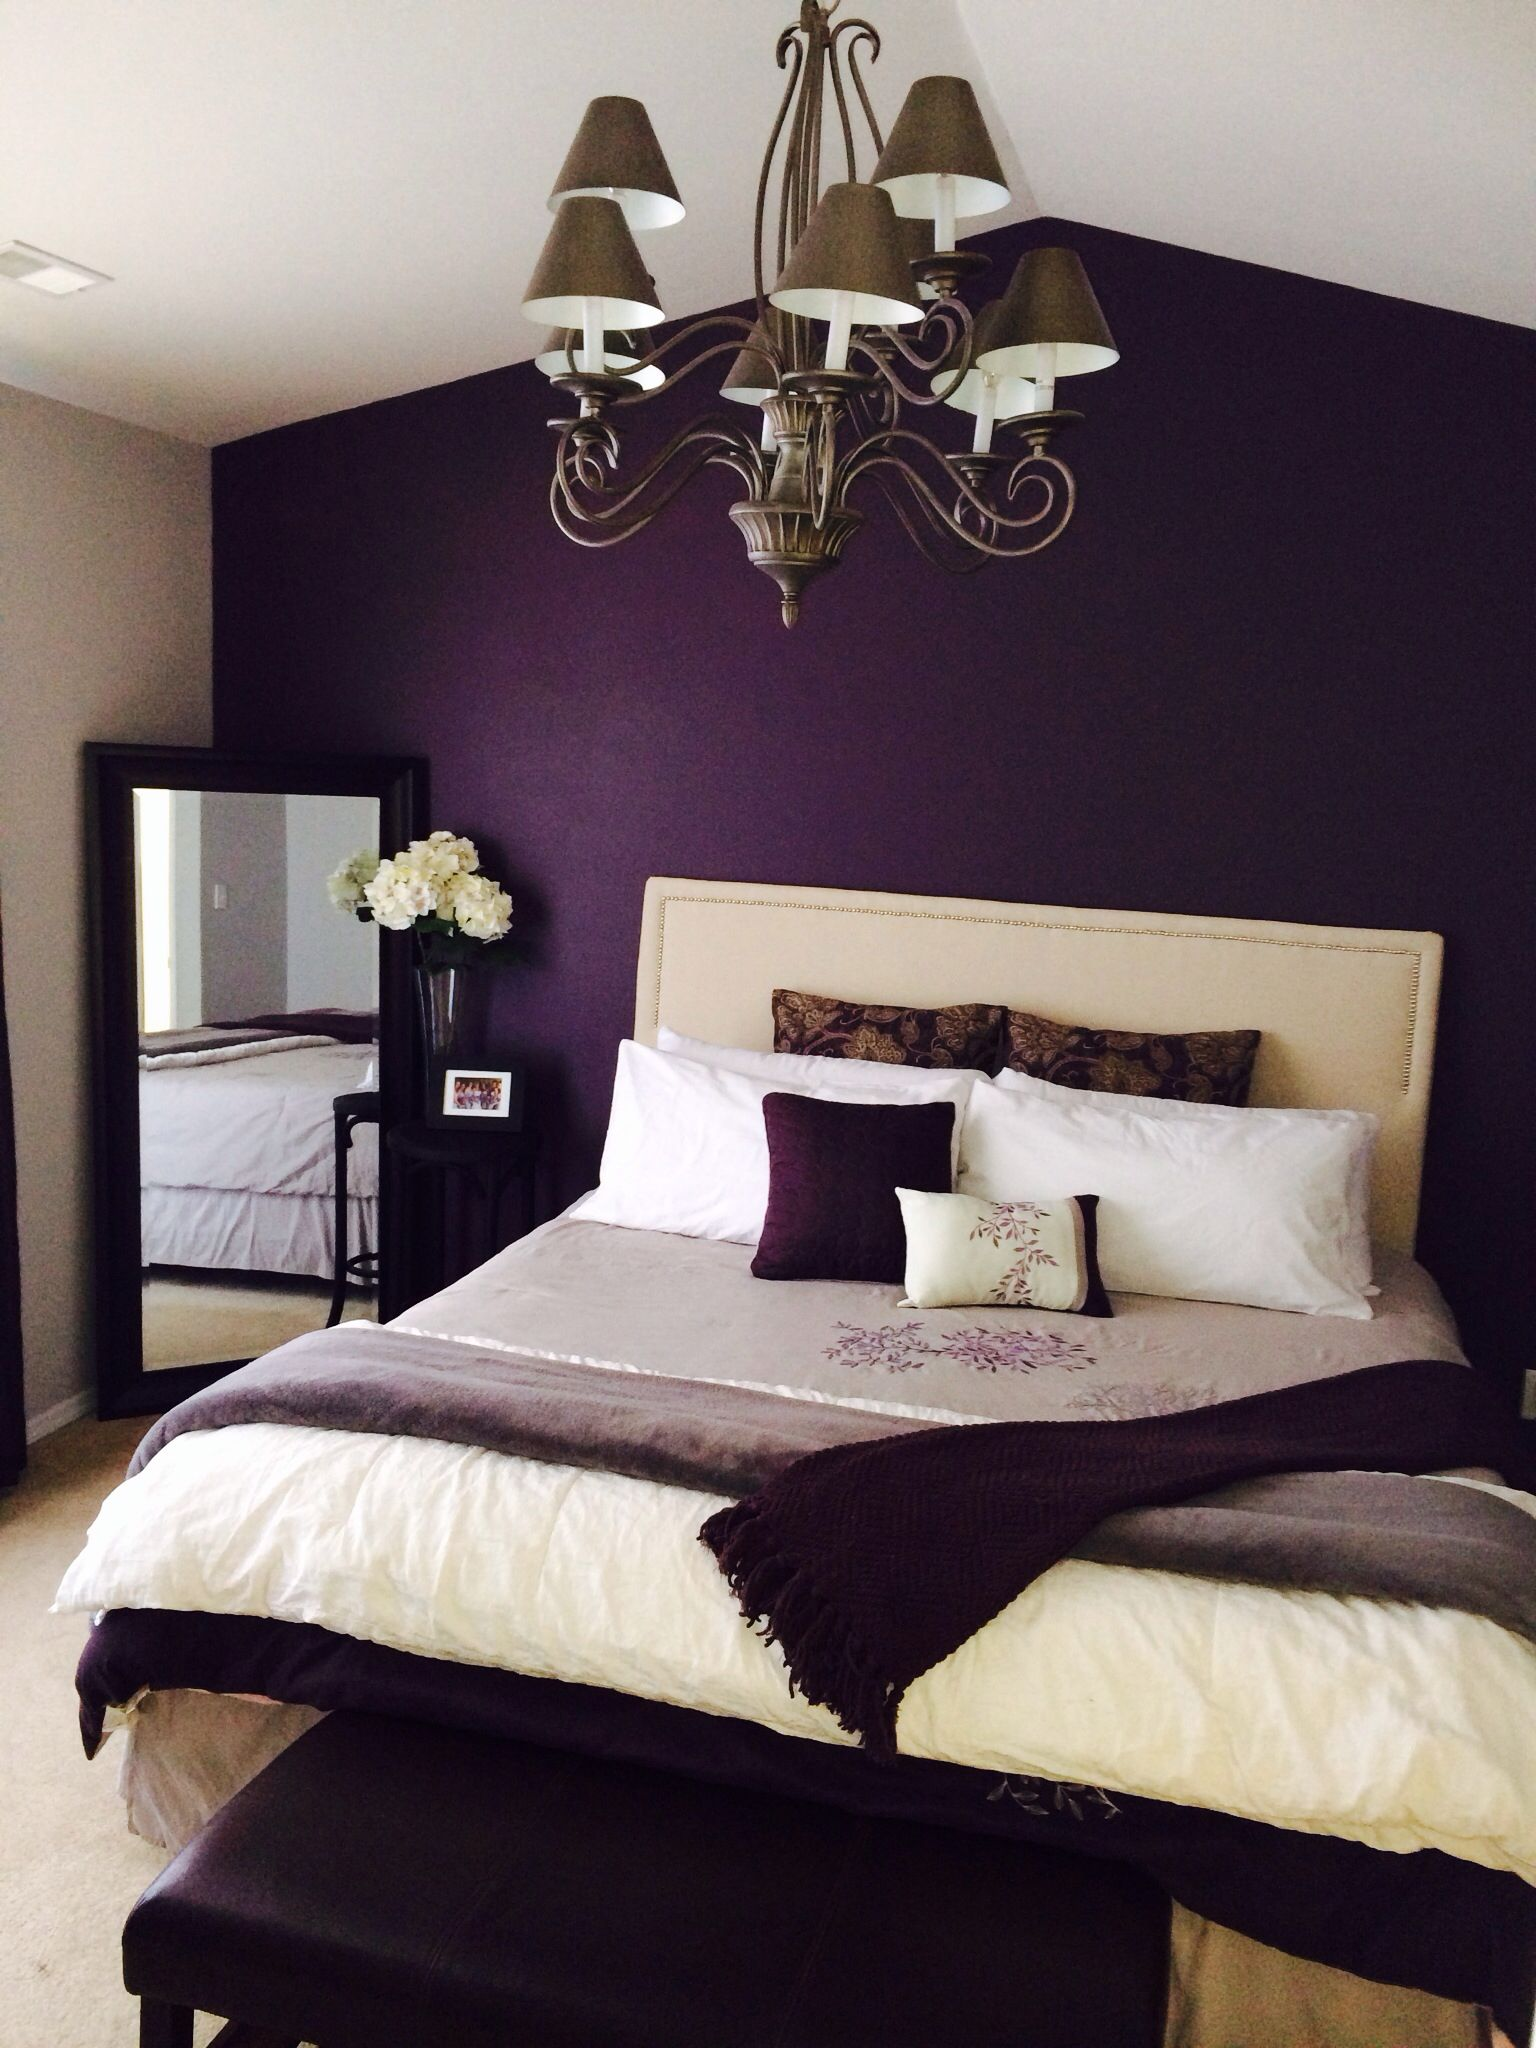 Romantic Bedroom Design Decor By Kelly Ann Purple Bedroom